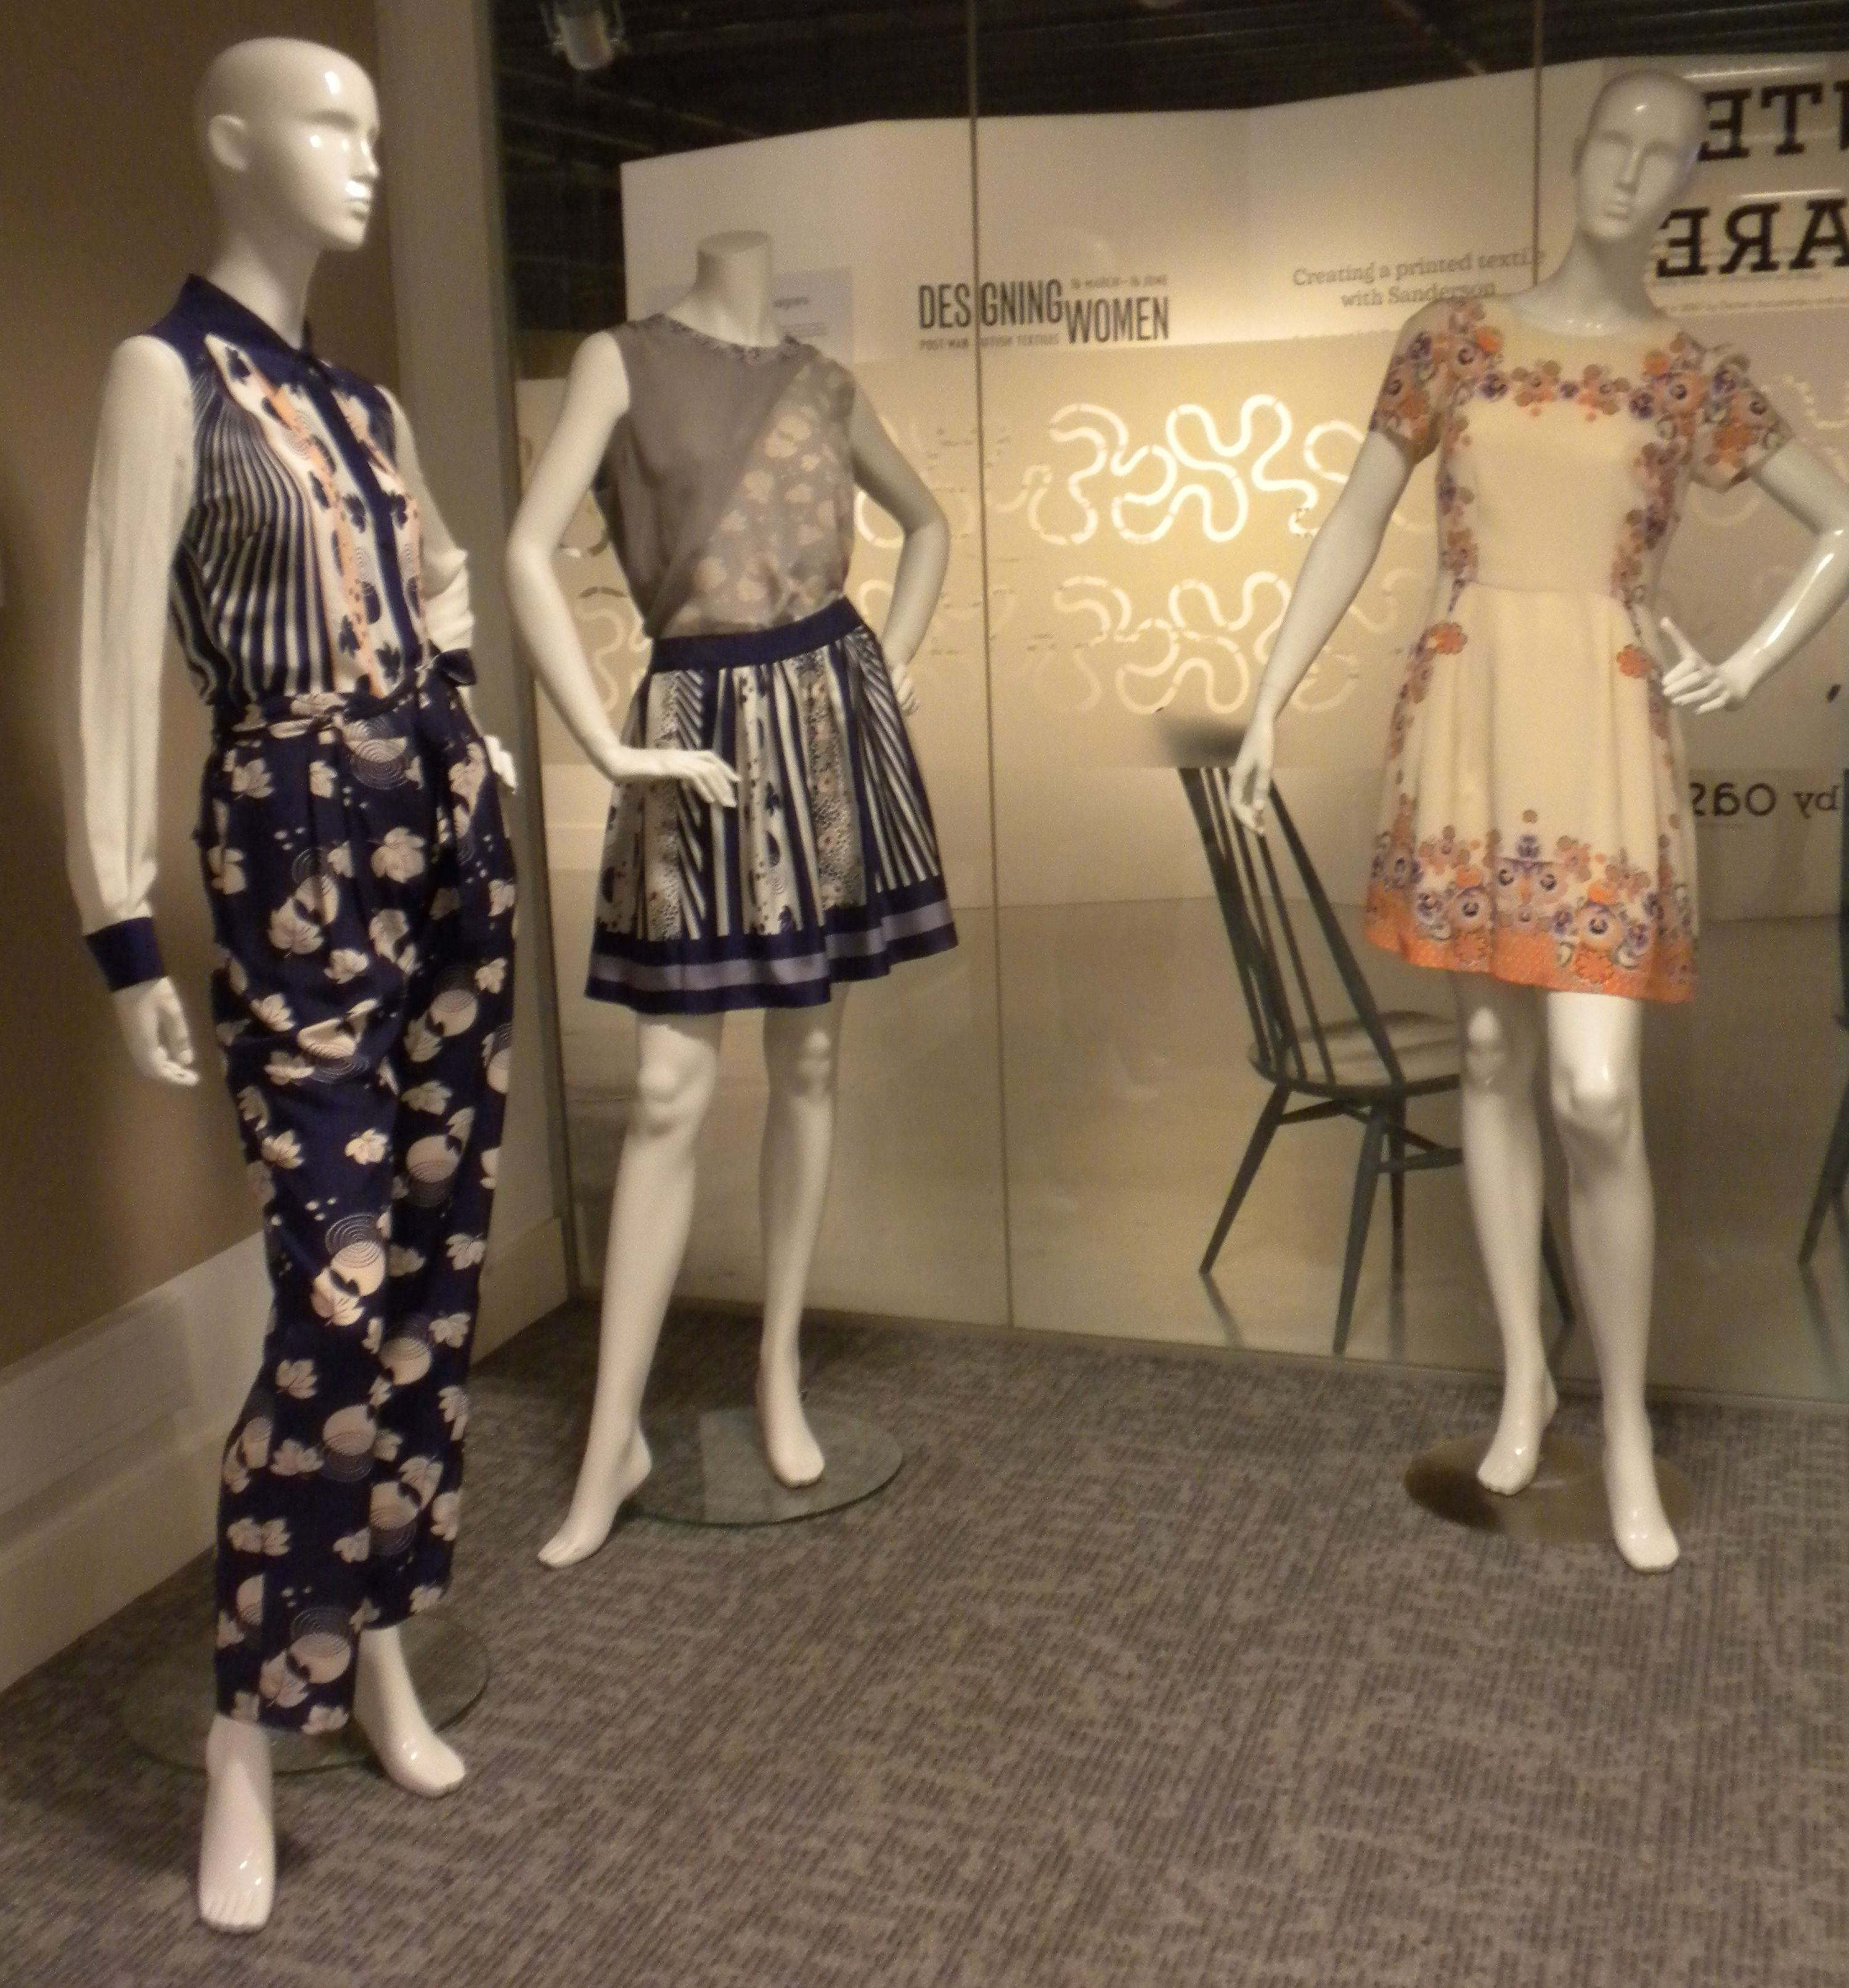 A display of garments inspired by vintage handkerchief prints at the Fashion and Textile Musuem